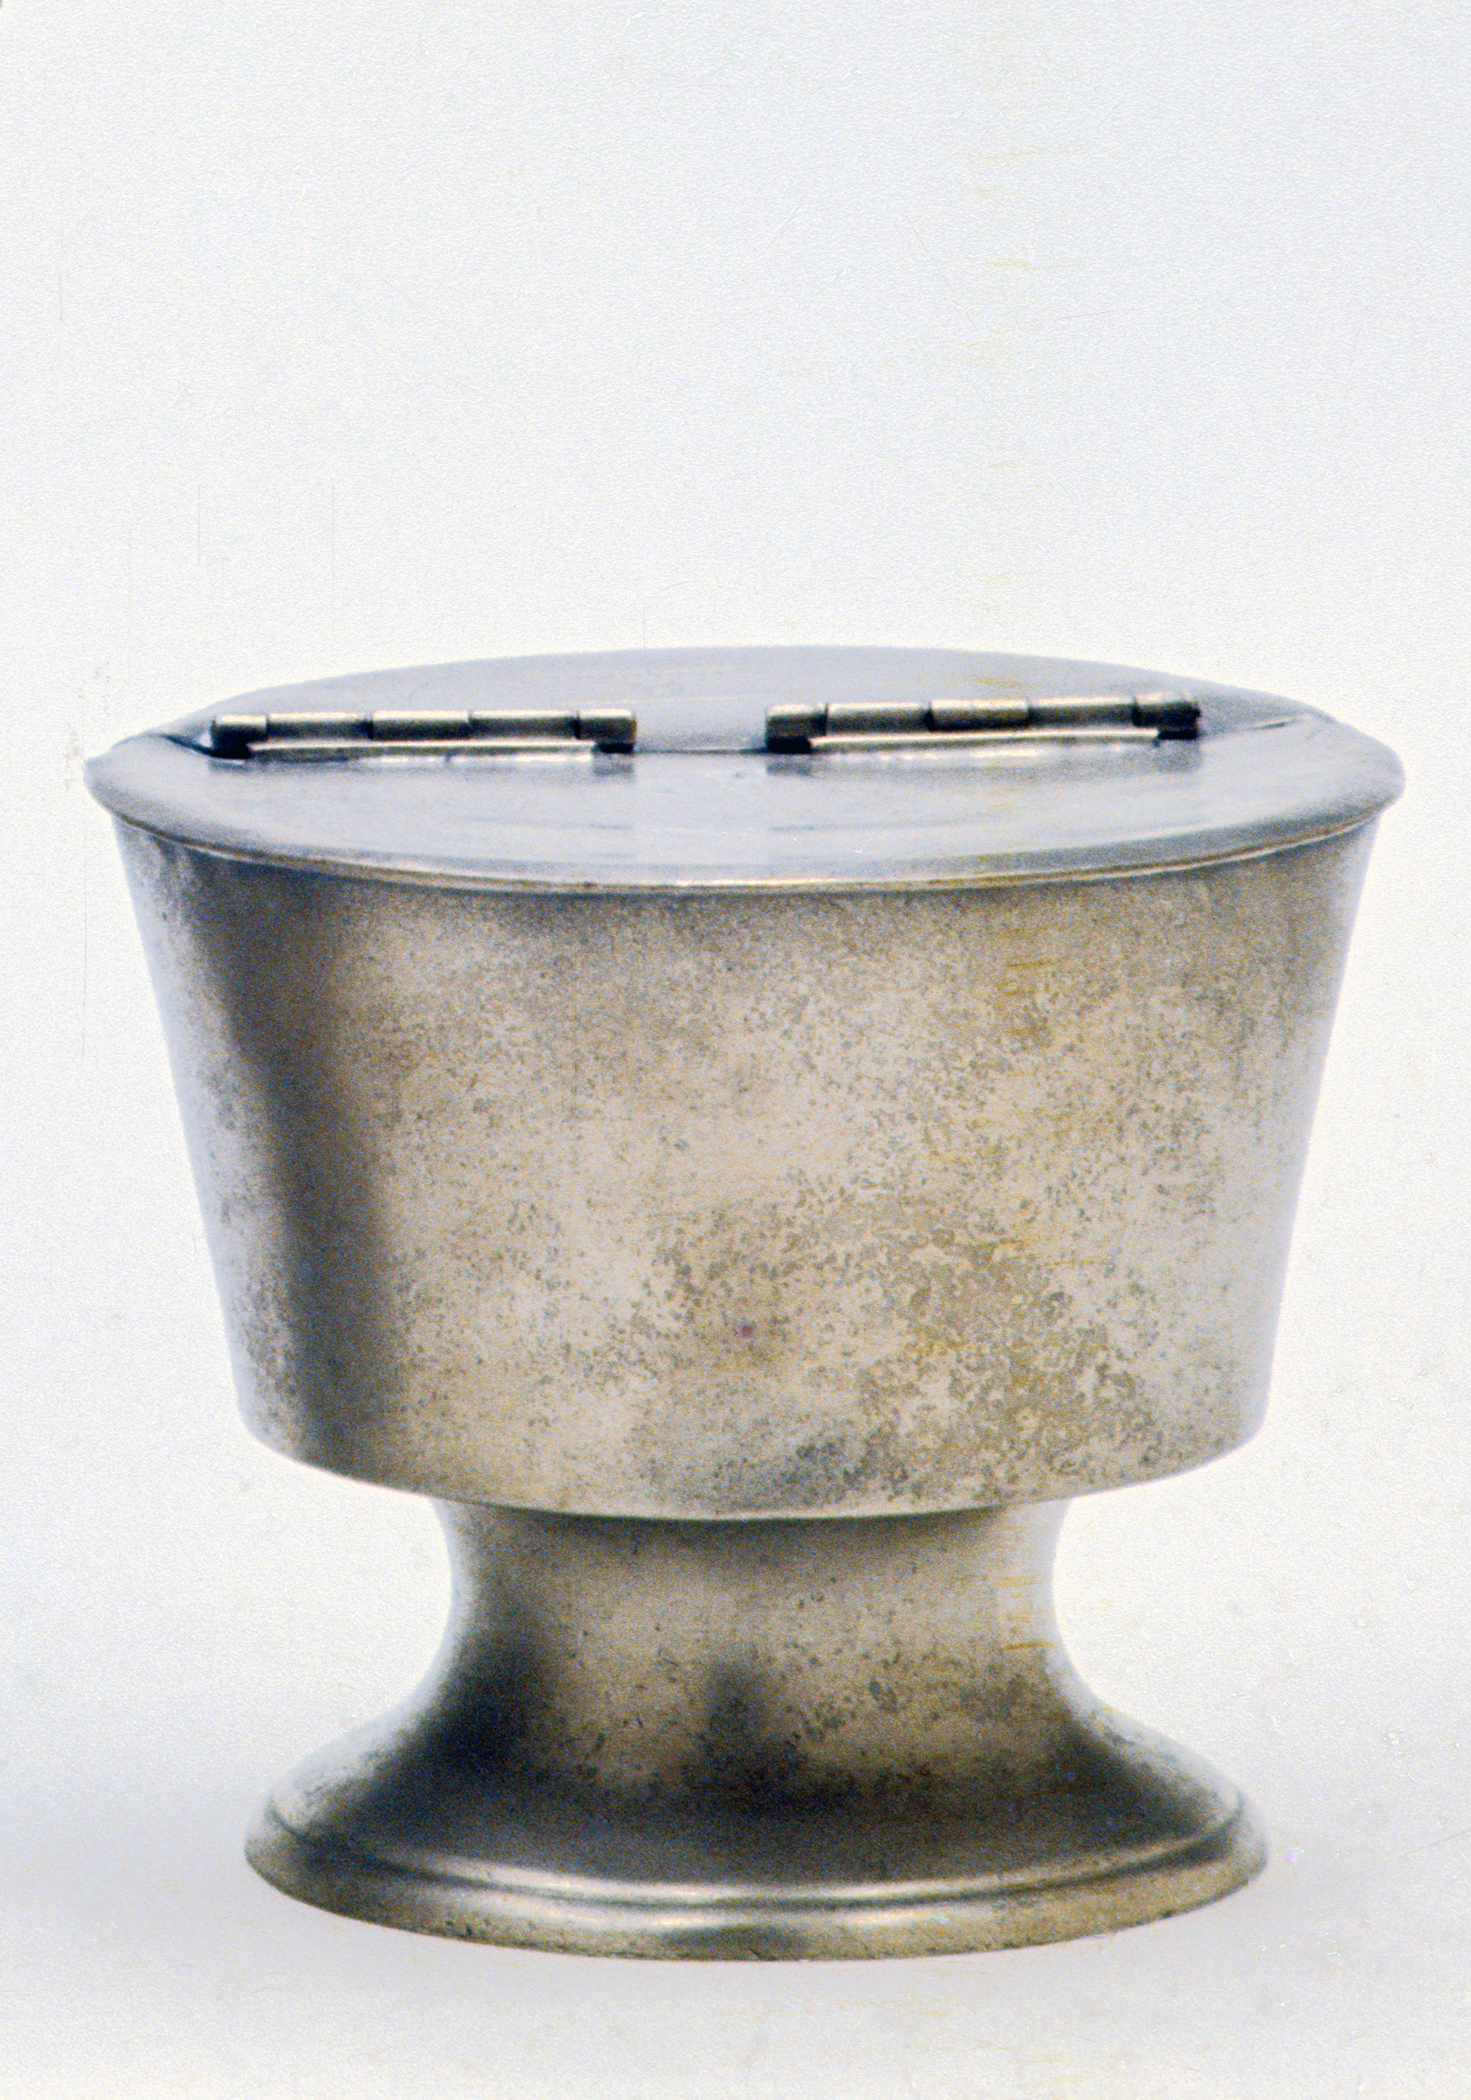 Metals - Bowl and cover